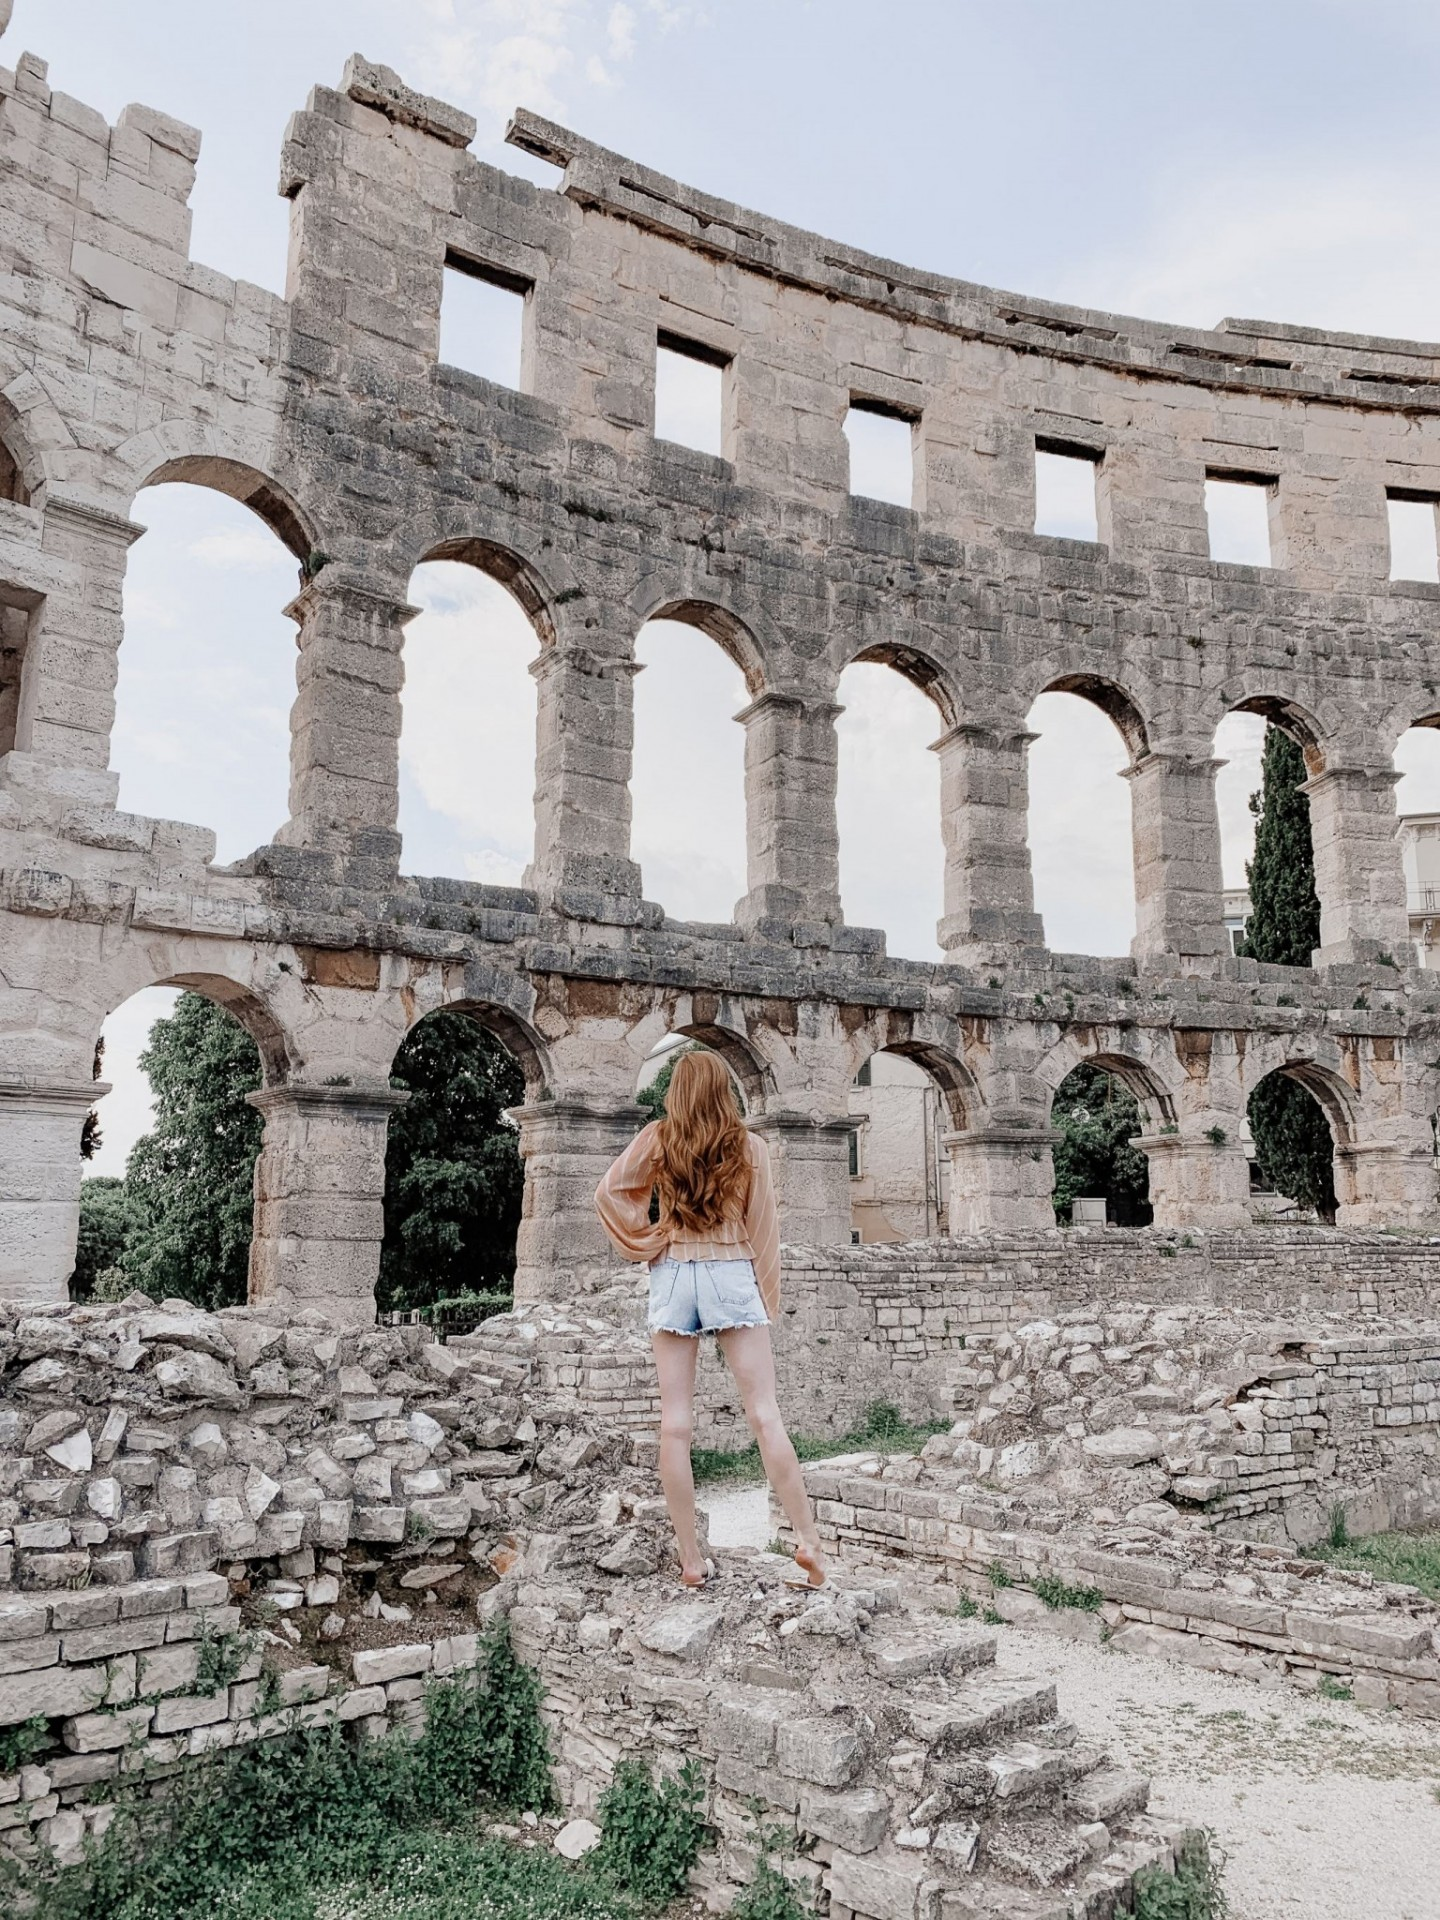 Lifestyle blogger Mollie Moore shares an Istria, Croatia travel guide. | Istria, Croatia Travel guide by popular London fashion and travel blogger Mollie Moore: image of woman standing in building ruins in Istria, Croatia.